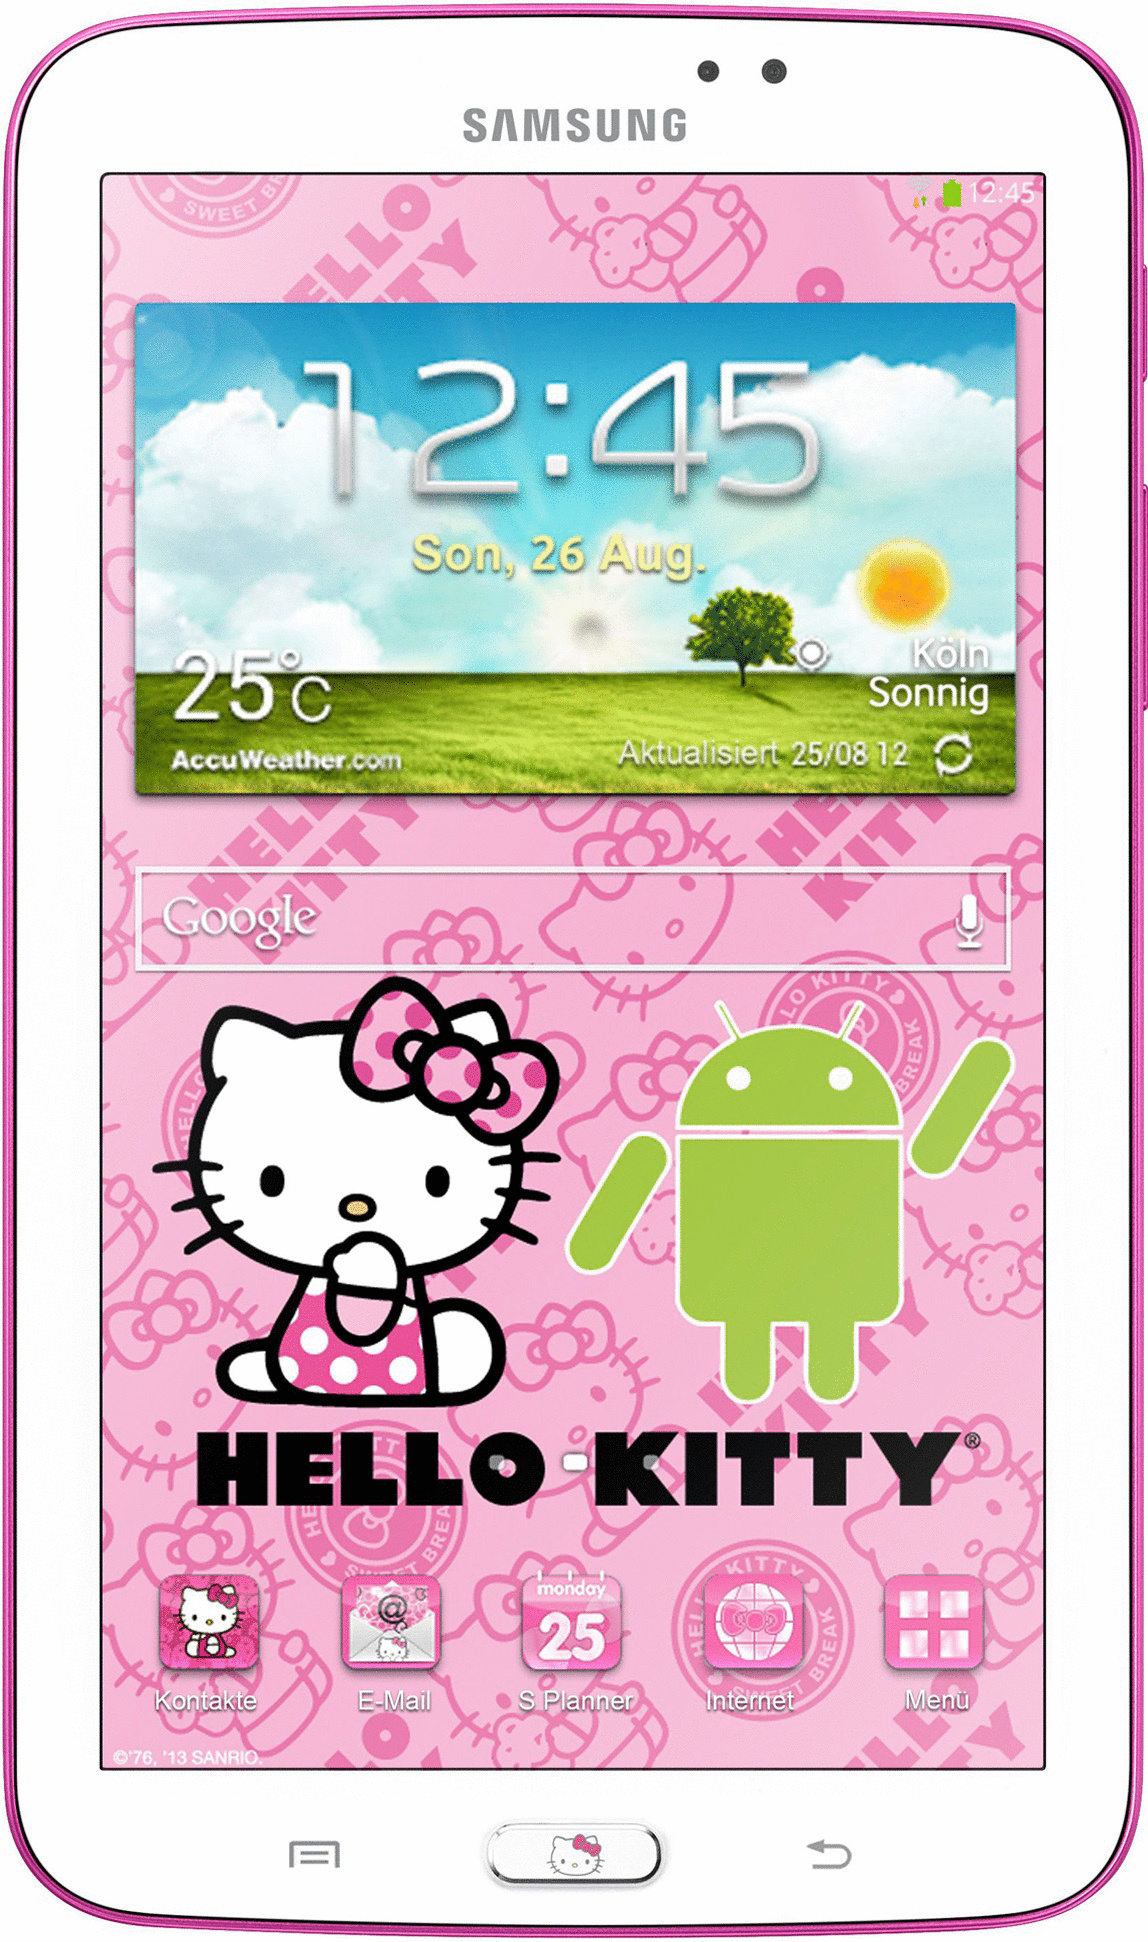 Samsung Galaxy Tab 3 7.0 7 8GB [wifi, Hello Kitty Edition] wit